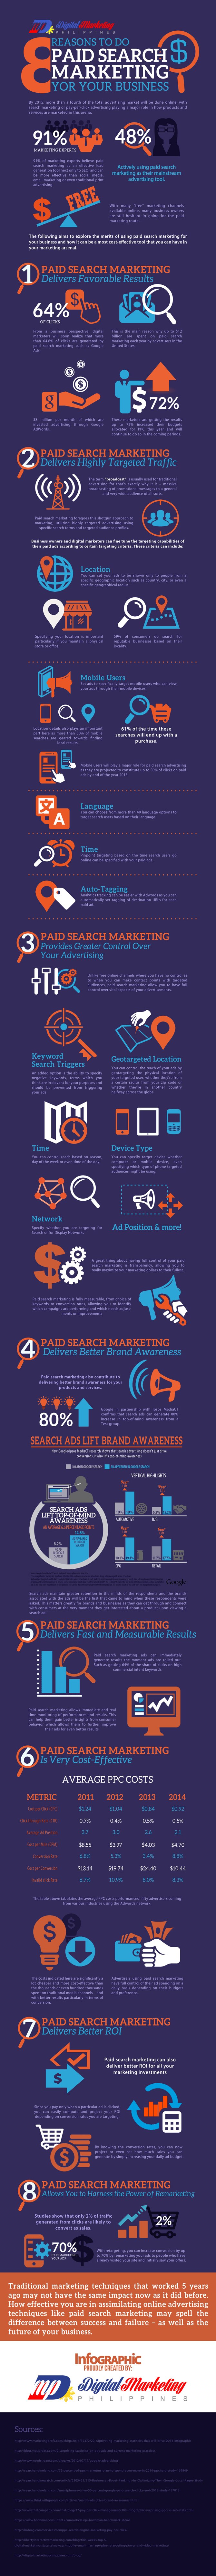 8-Reasons-to-do-Paid-Search-Marketing-for-your-Business